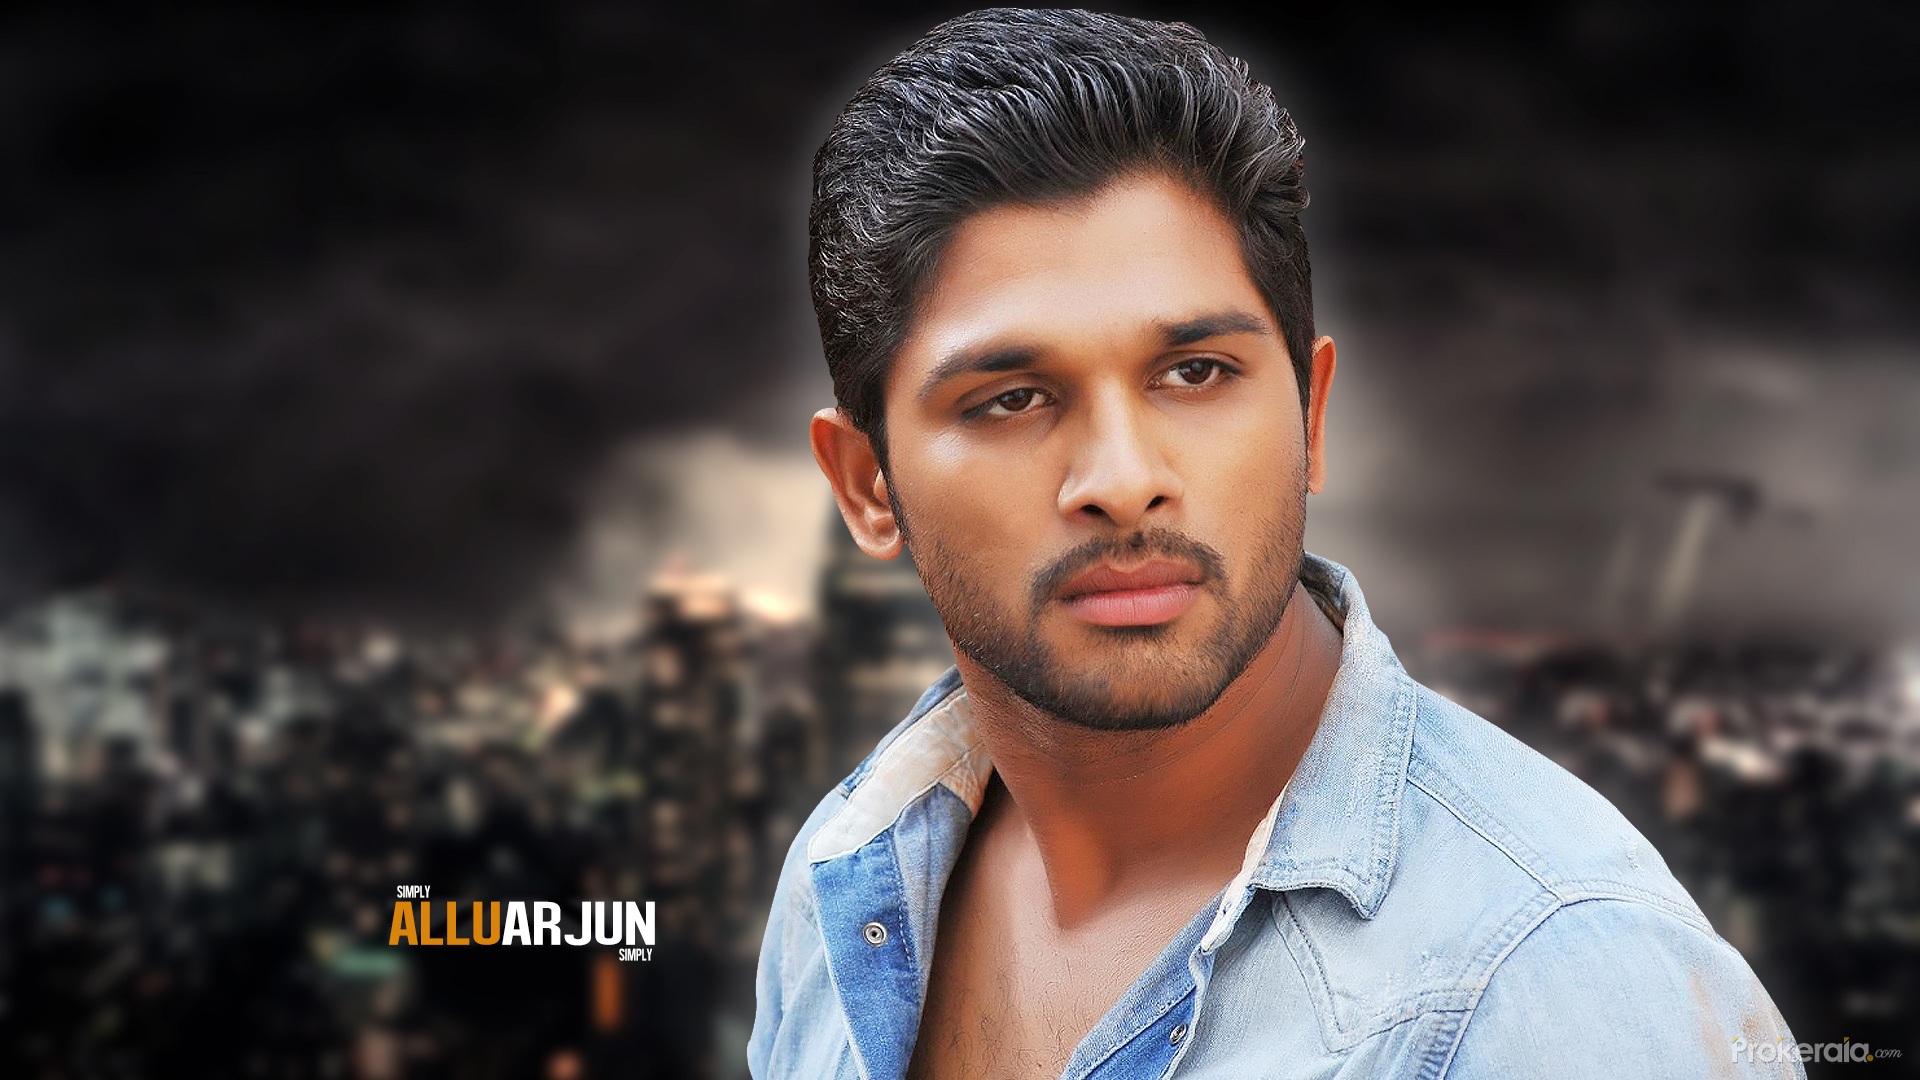 allu arjun new hairstyle in dj